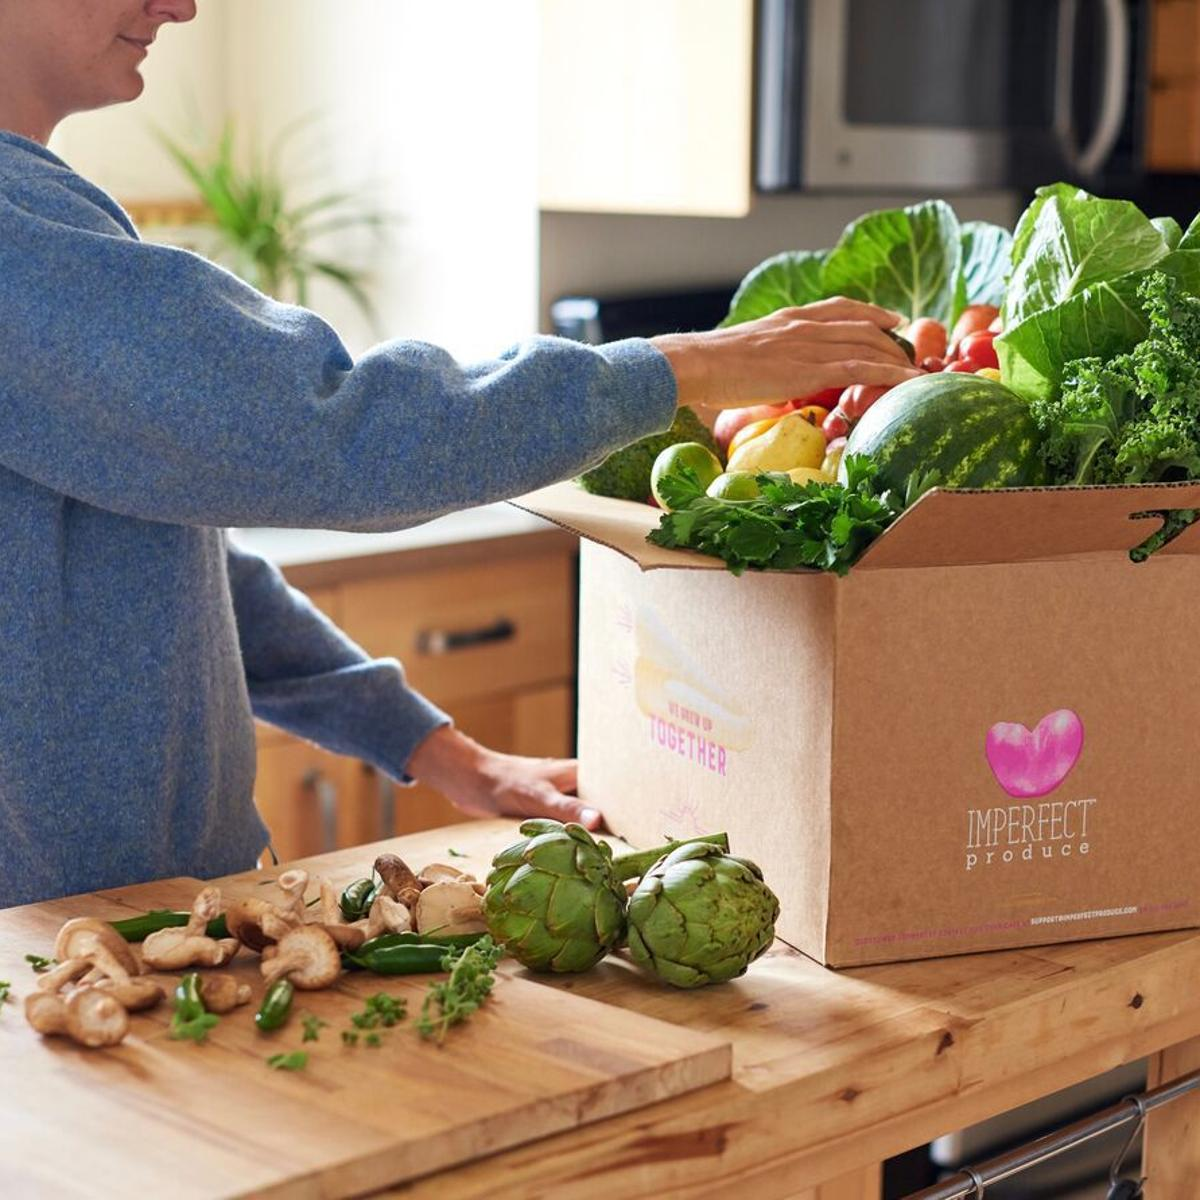 Imperfect Produce bringing vegetable delivery service to